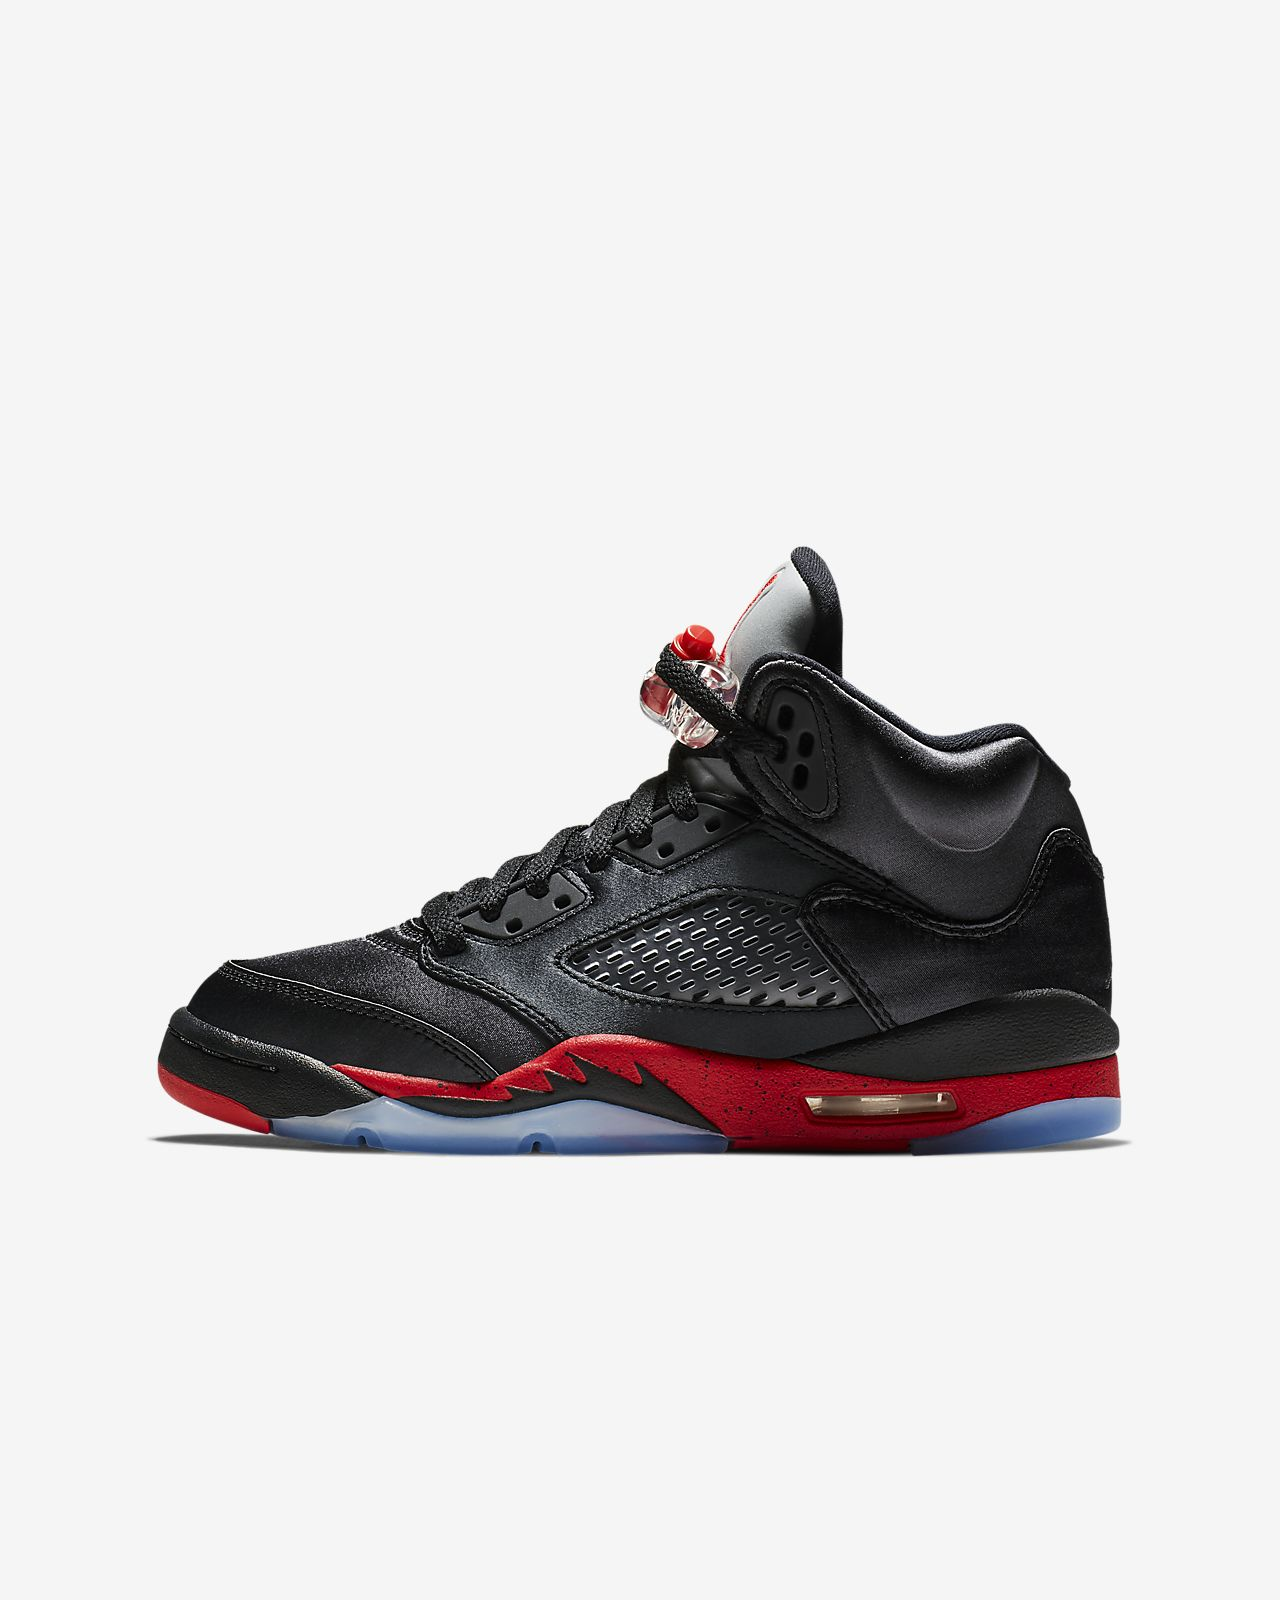 84c3077bd2 Air Jordan 5 Retro Older Kids' Shoe. Nike.com CA